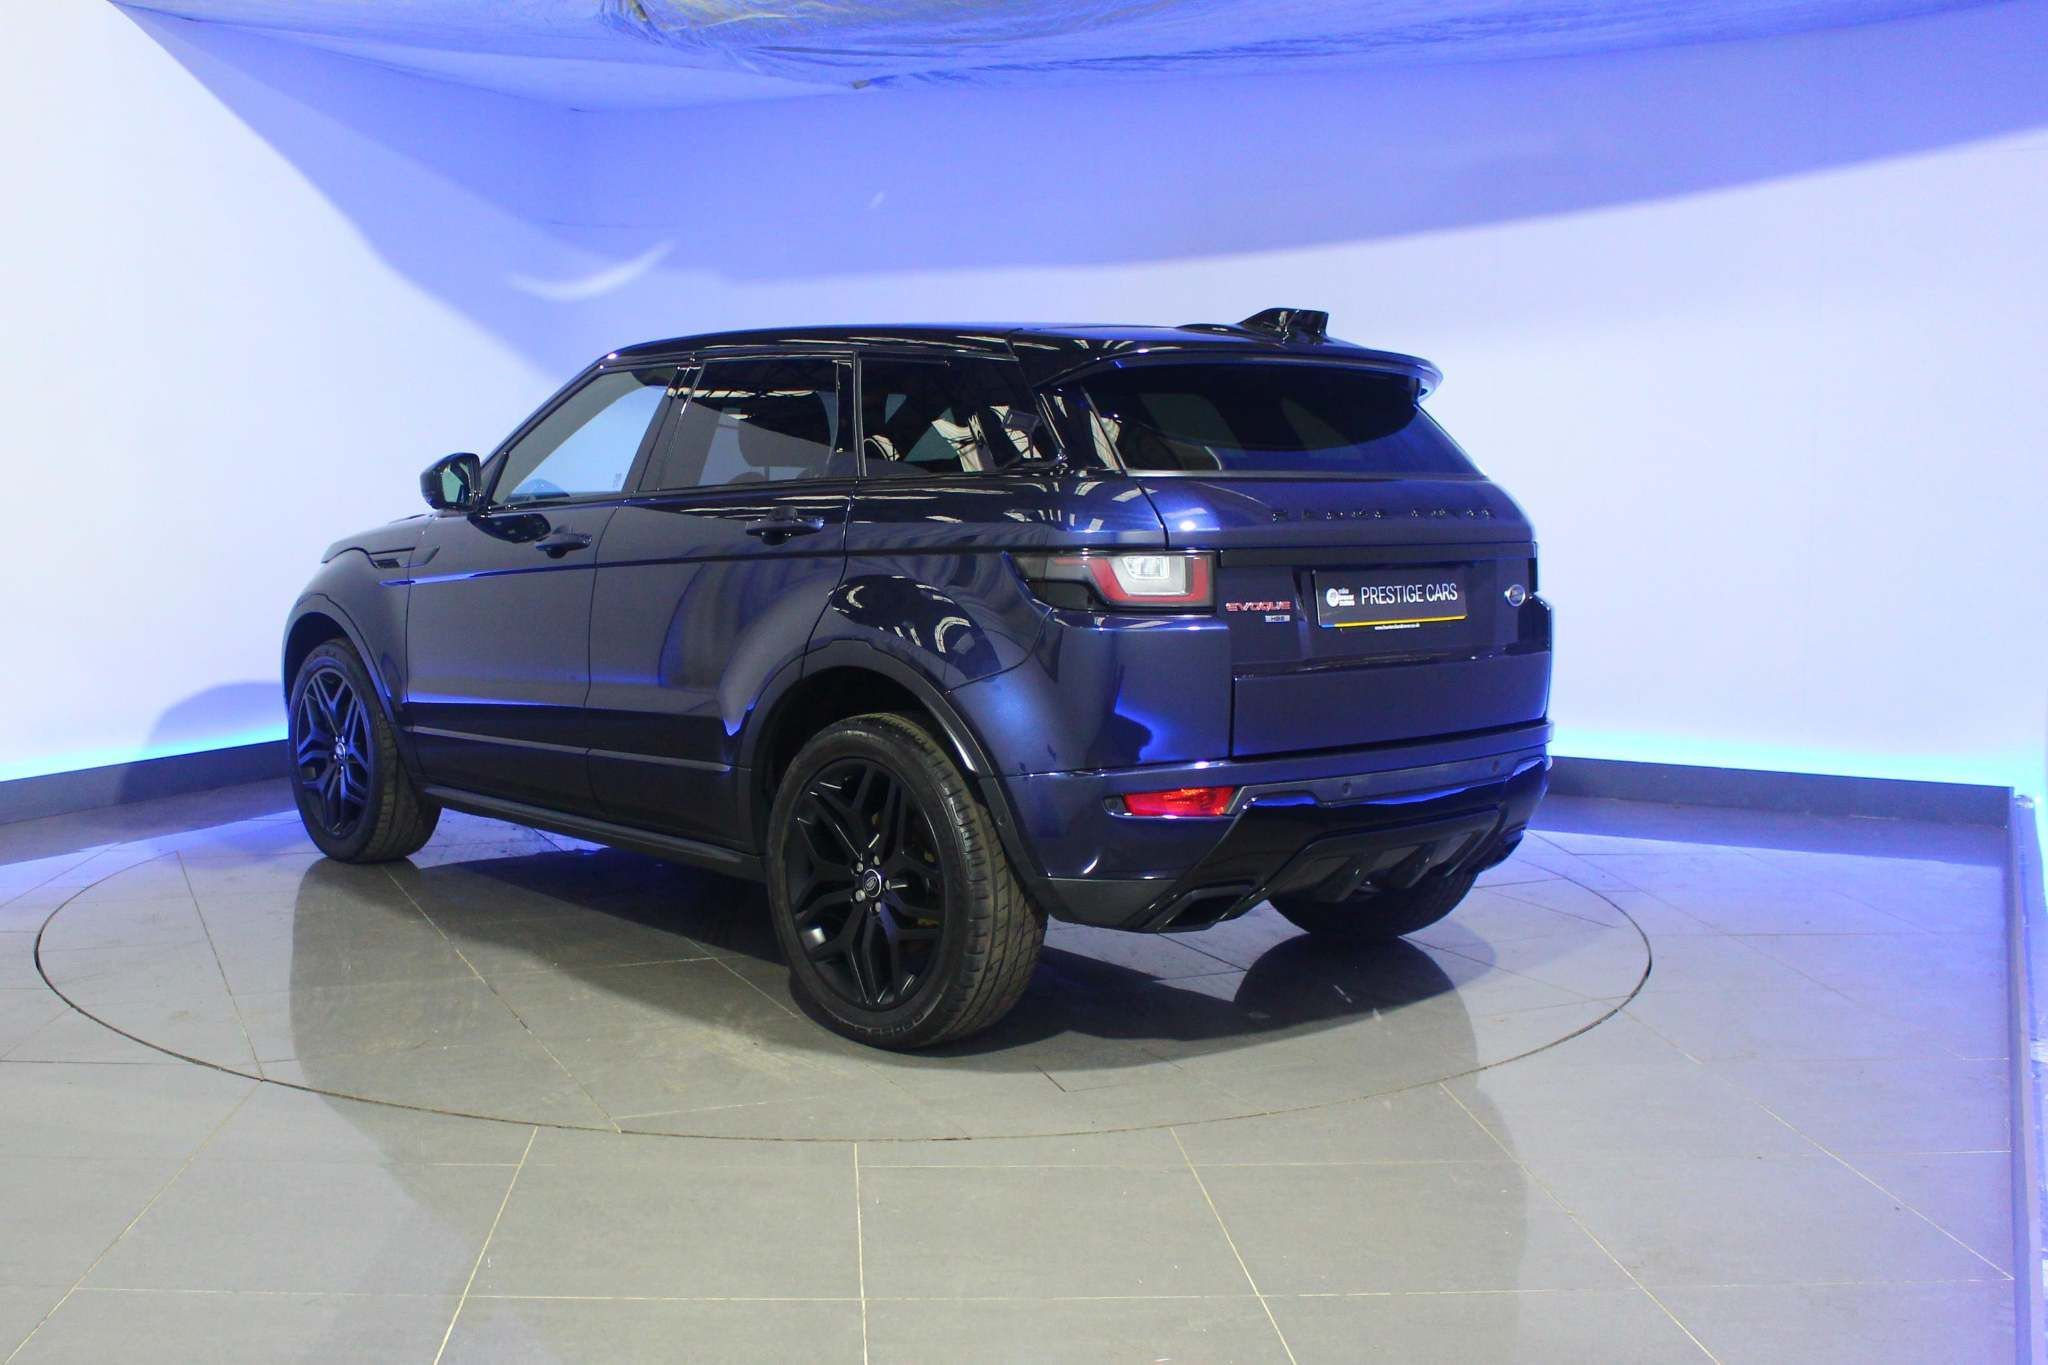 Used Land Rover Range Rover Evoque 2.0 Td4 Hse Dynamic Lux Auto 4wd (s/s) 5dr